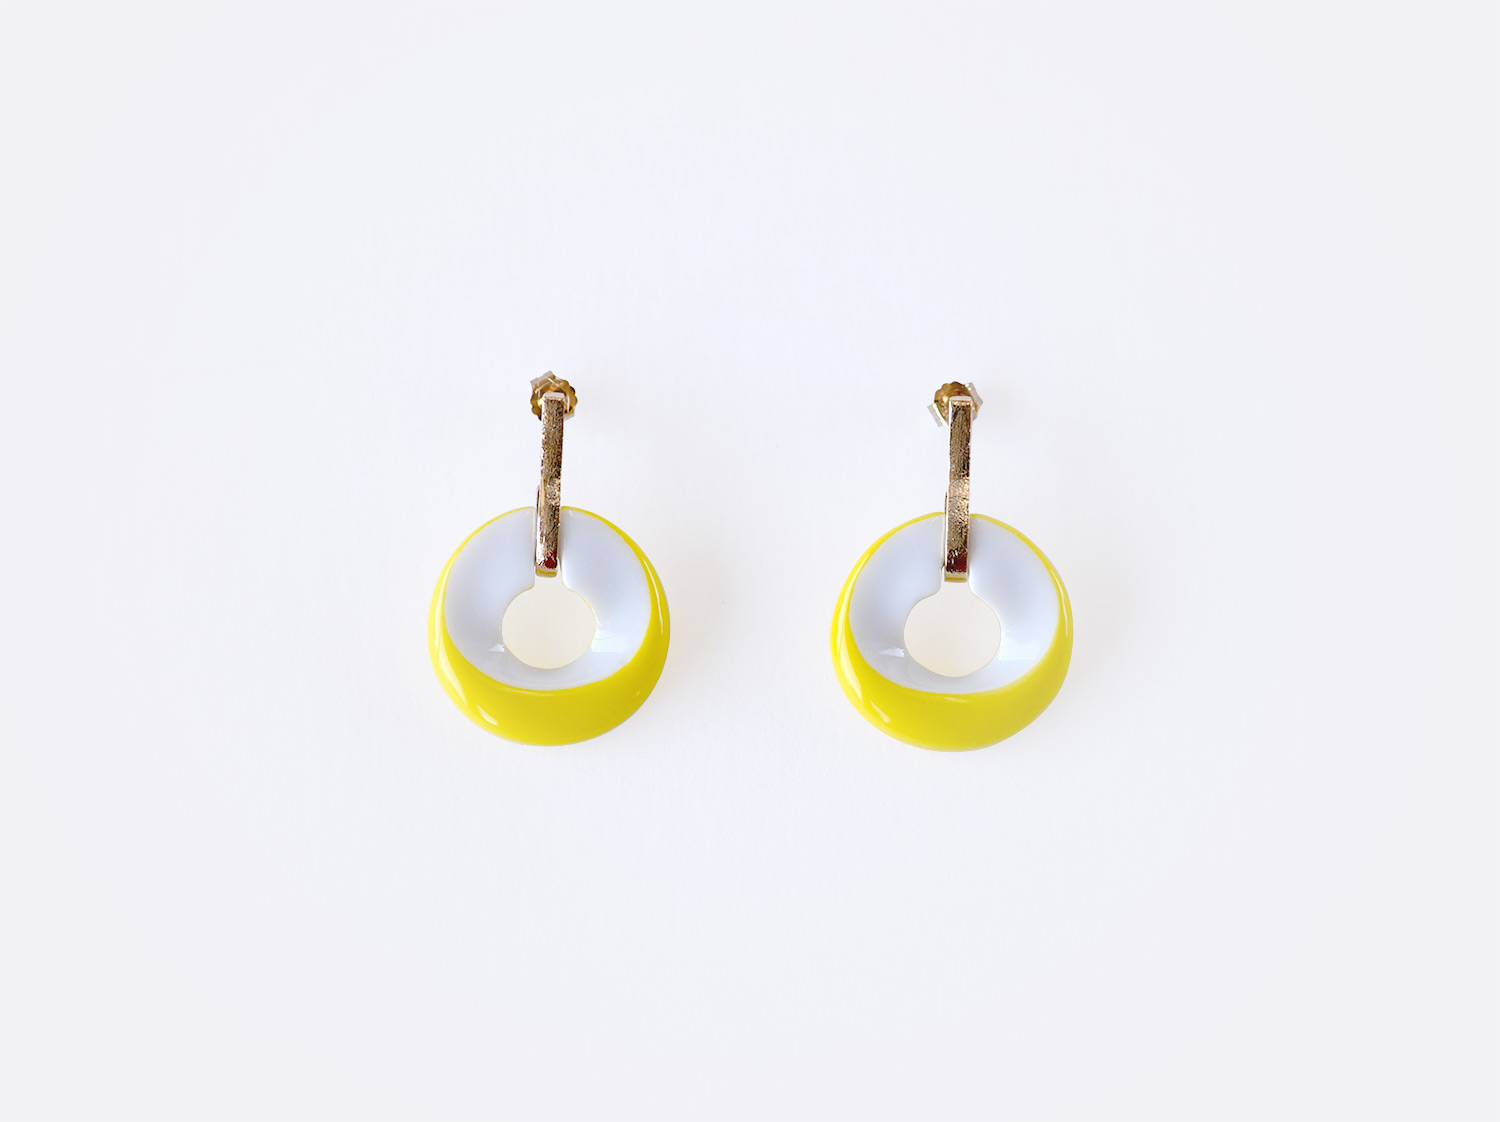 China Earrings of the collection ALBA JAUNE | Bernardaud